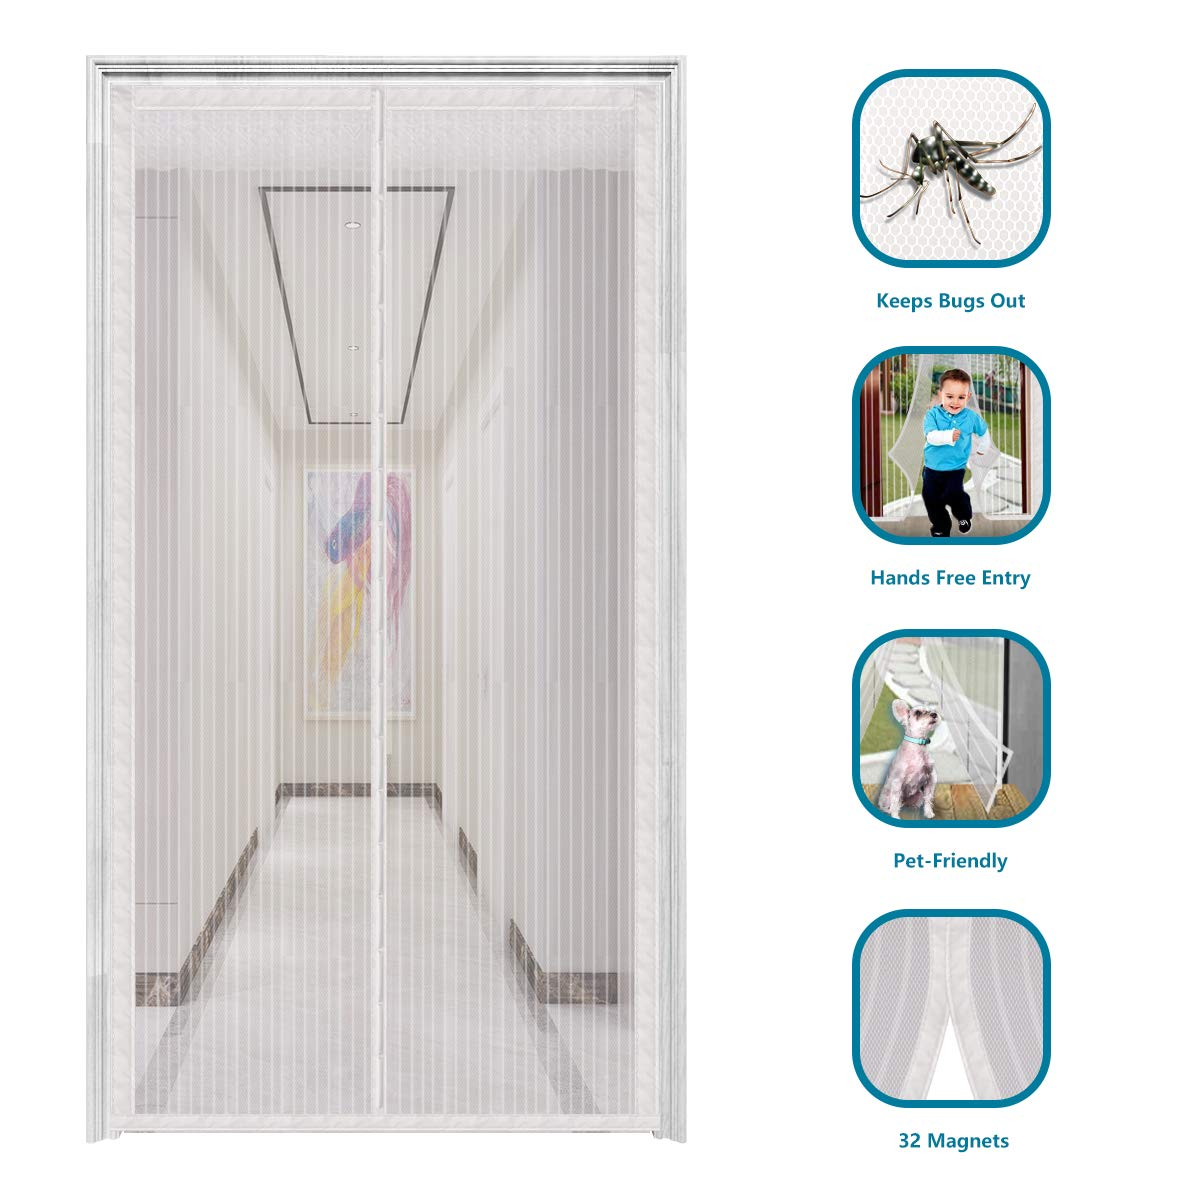 innotree 2019 Upgraded Magnetic Screen Door with 32 Magnets Heavy Duty Mesh Curtain, Fits Doors Up to 39''x82'', Dogs Pets Friendly Door Screen, White by Innotree